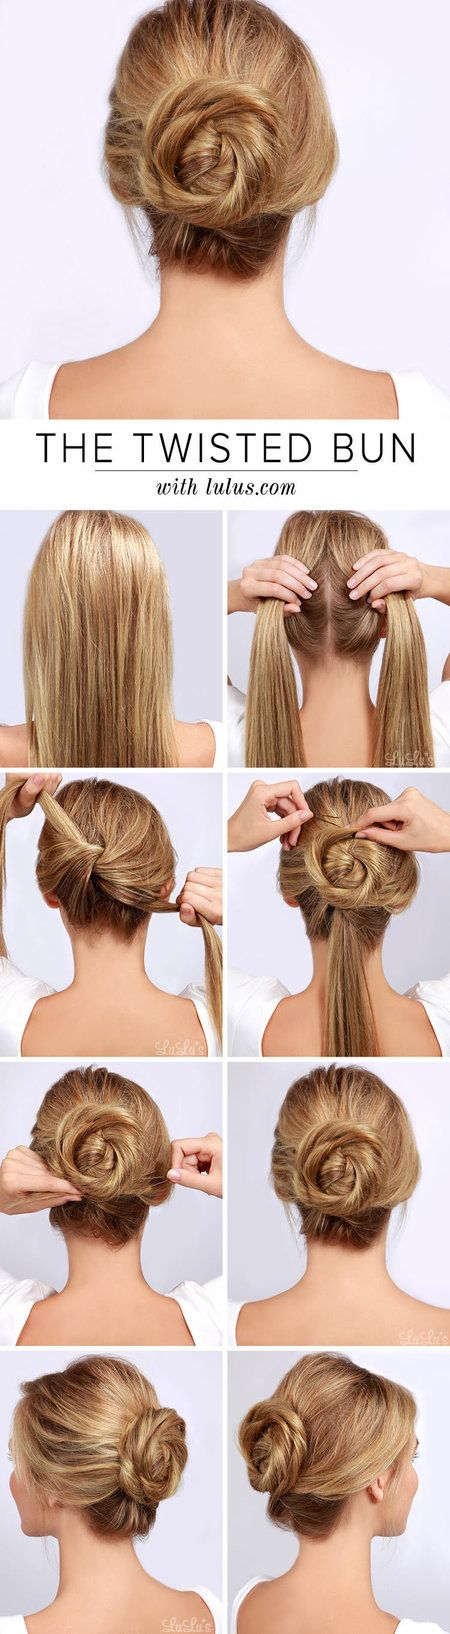 This is an adorable spiral twisty bun that looks really easy to do. It's a great twist on the traditional bun! Happy hair twisting Bellas:) xoxo http://blog.lulus.com/beauty/lulus-how-to-twisted-bun-hair-tutorial/